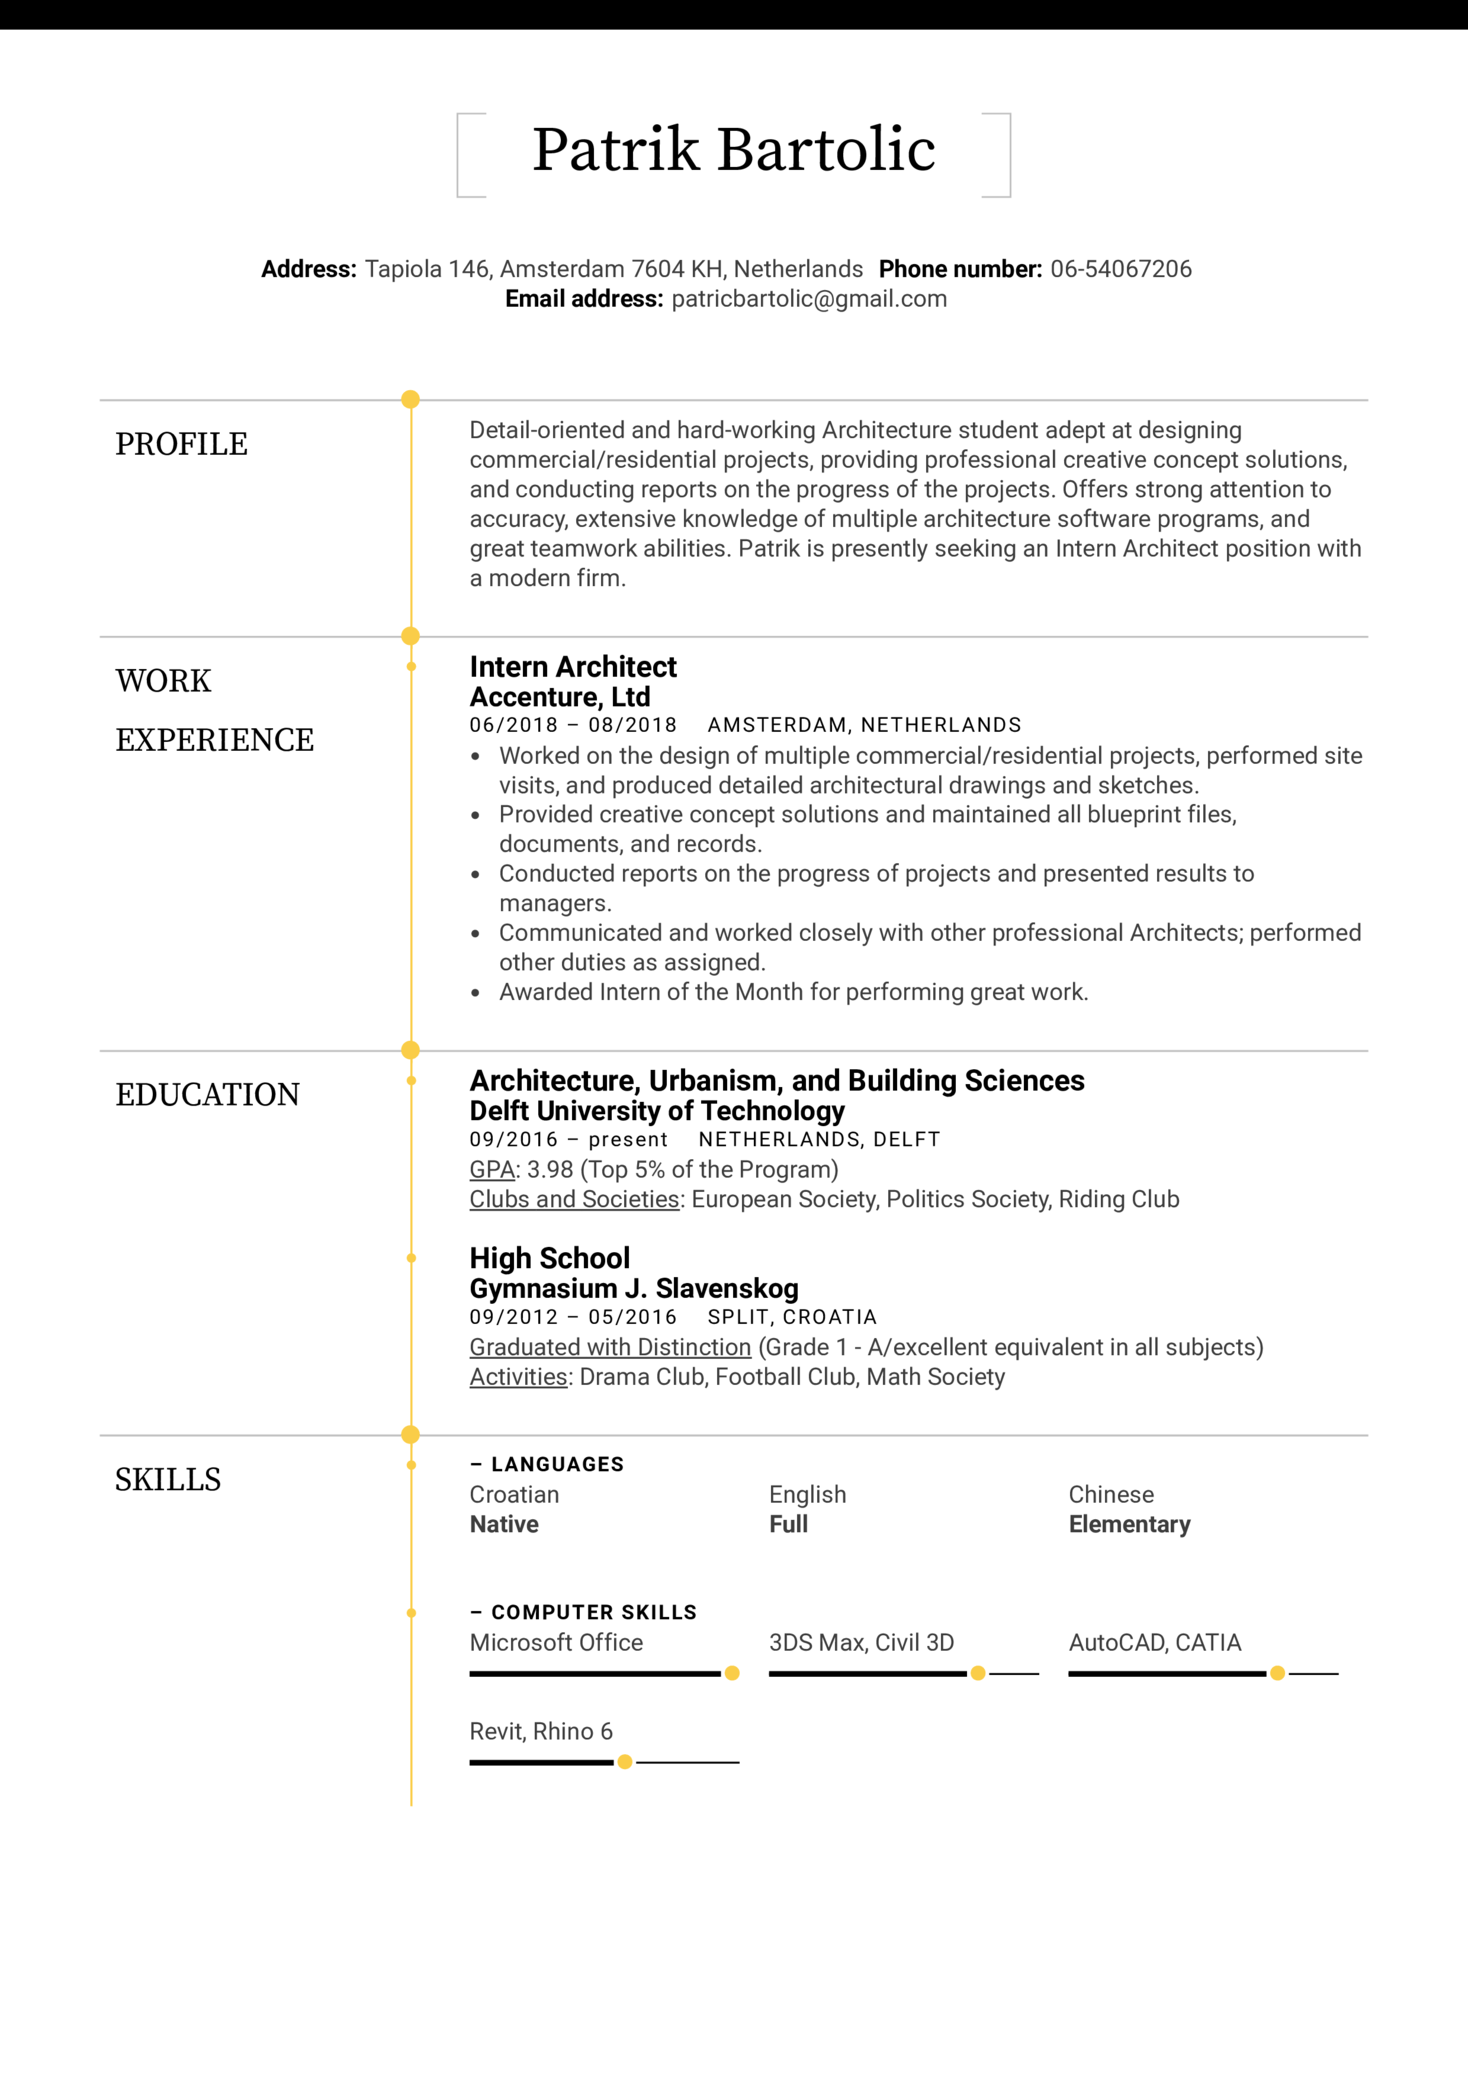 Intern Architect Resume Example (parte 1)